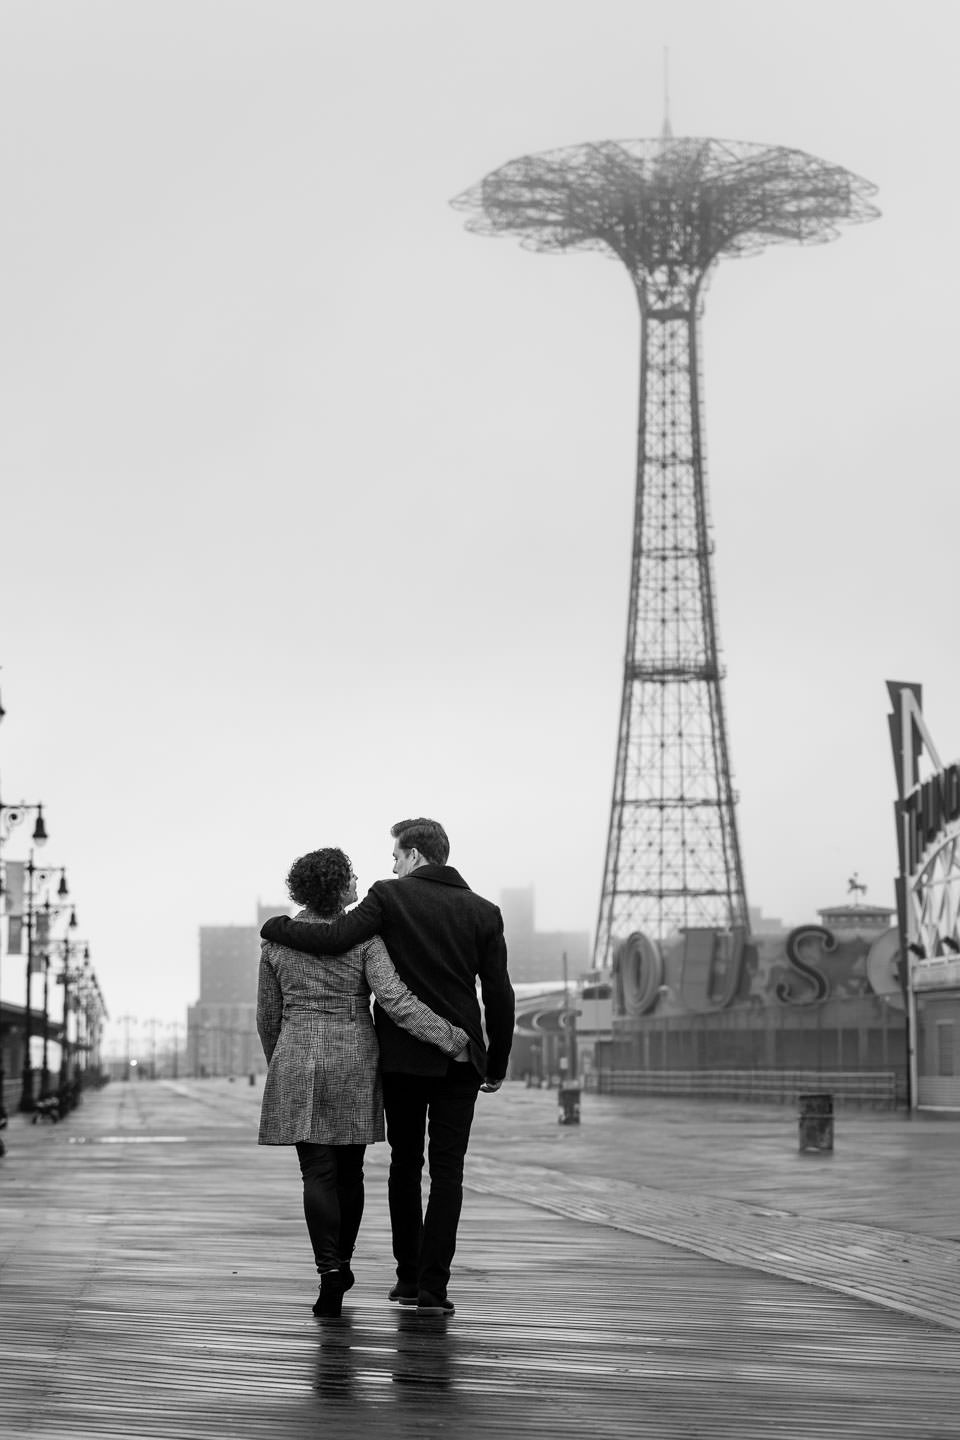 couple walking along coney island boardwalk during engagement session after the rain with parachute jump needle in the background